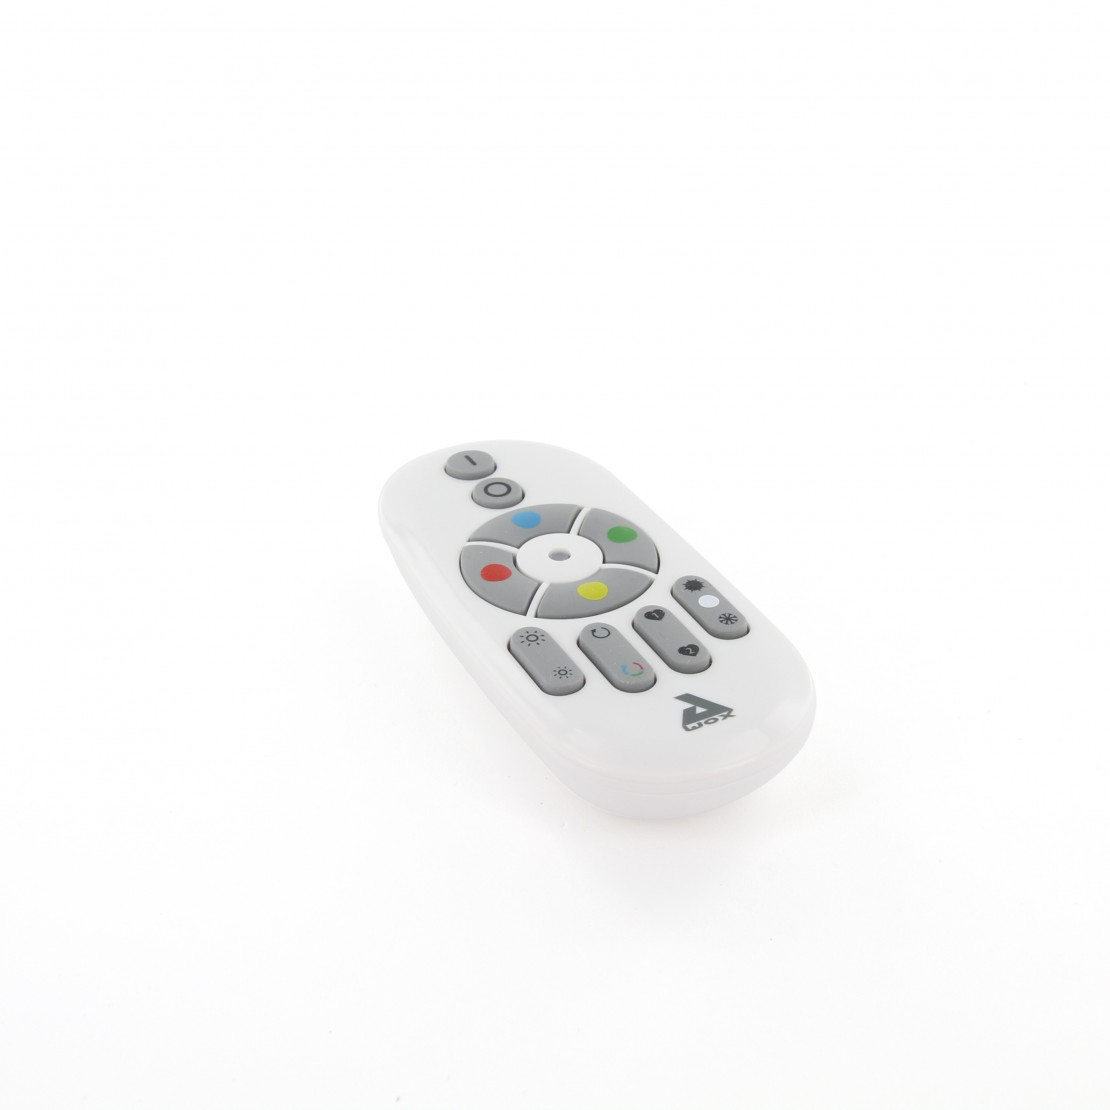 Bluetooth Mesh remote control